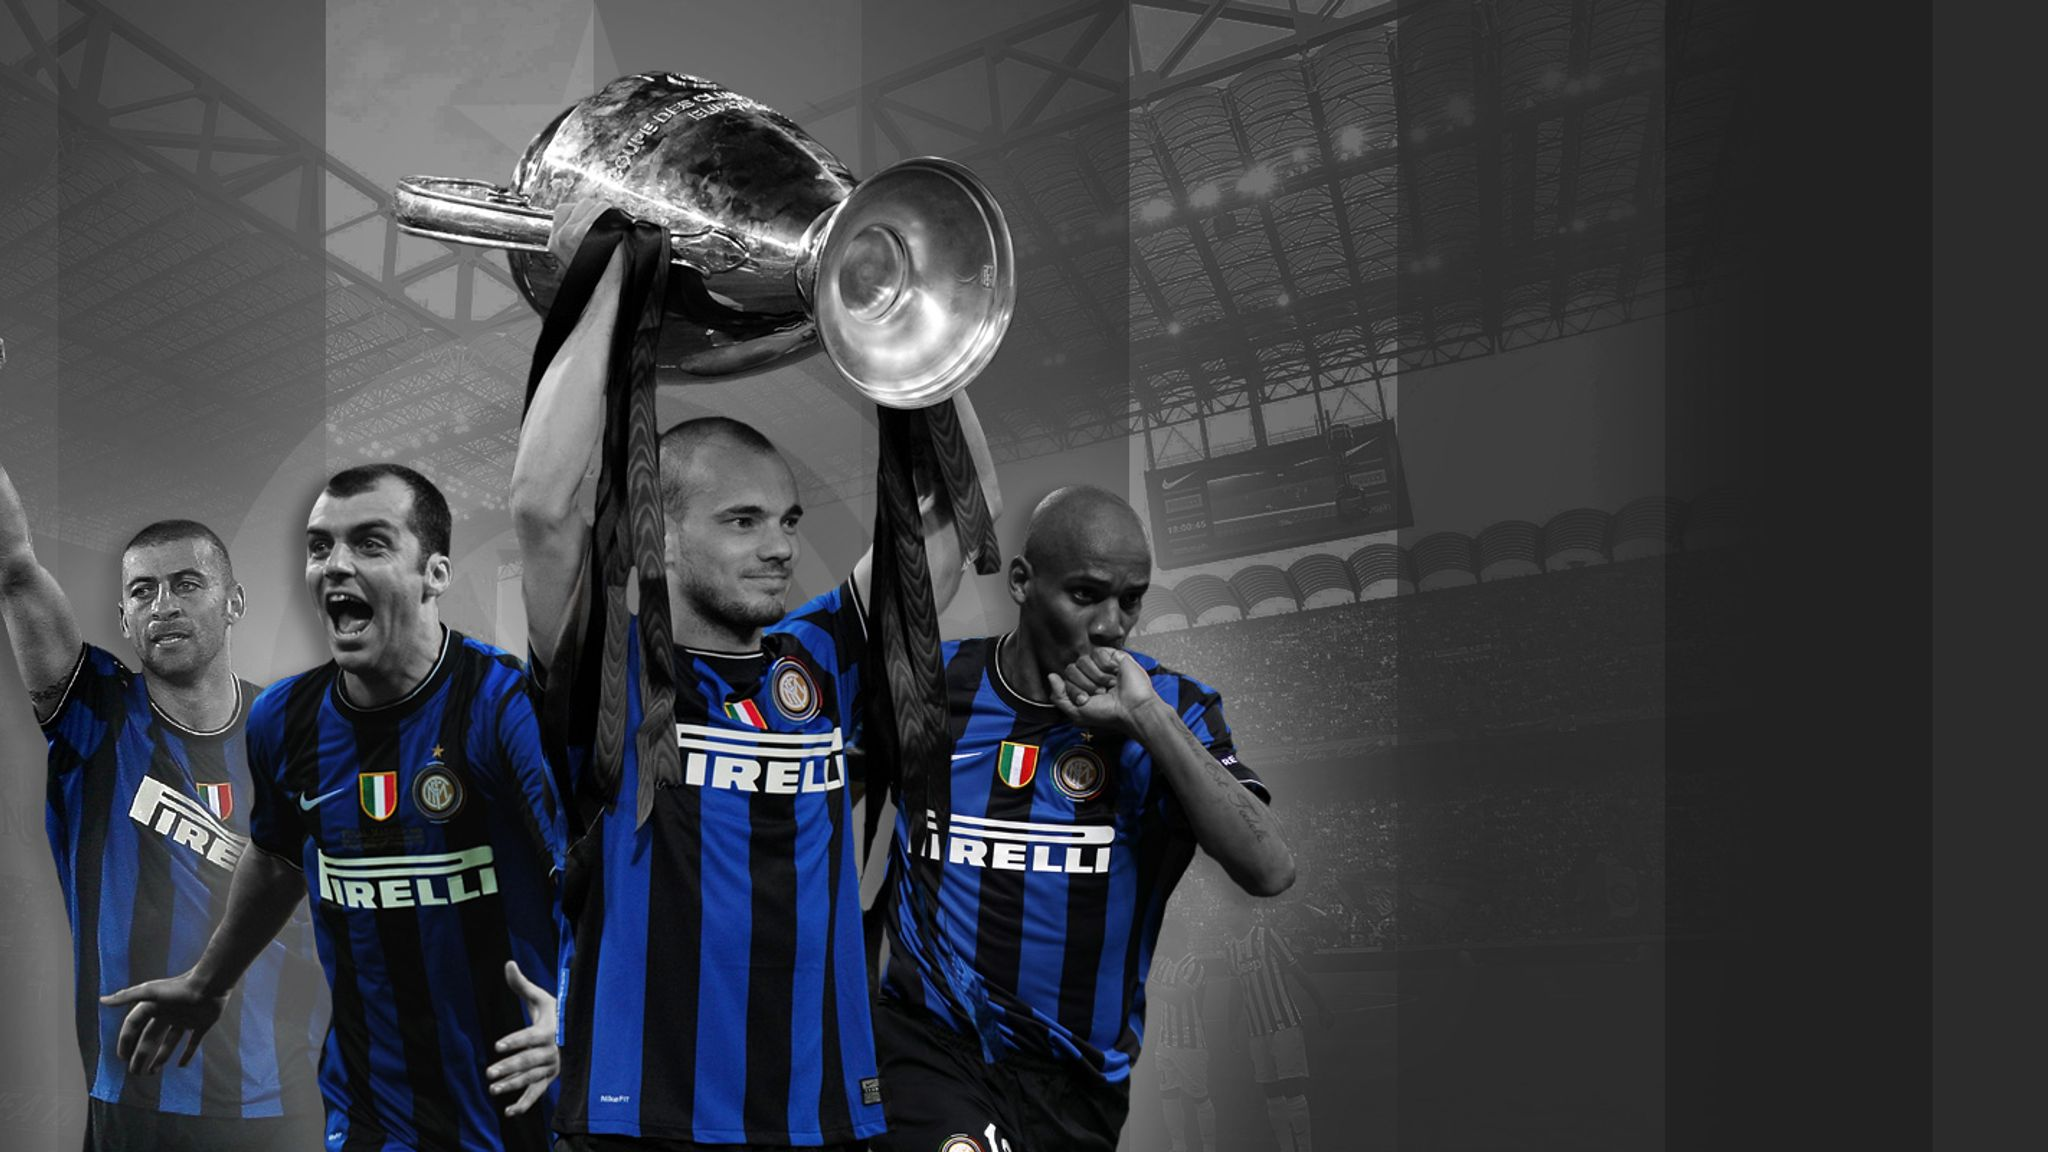 Inter S 2010 Champions League Side Where Are They Now Football News Sky Sports